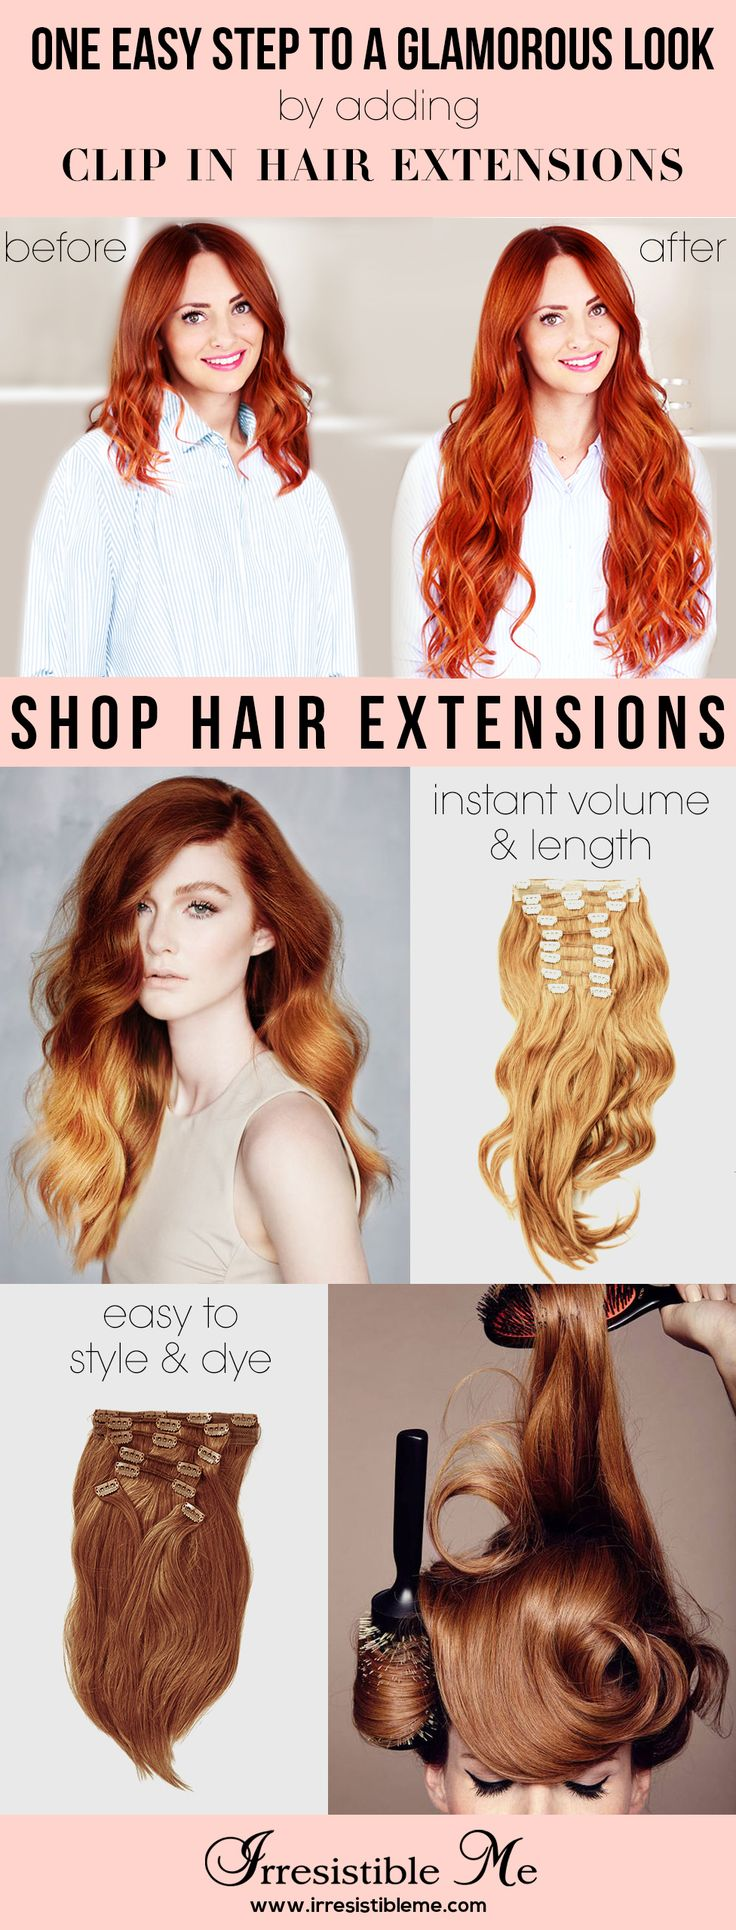 487 best irresistible me clip in hair extensions images on try a dramatic hairstyle change with irresistible me 100 human remy clip in hair extensions sign up to shop our entire collection of premium clip in hair pmusecretfo Gallery